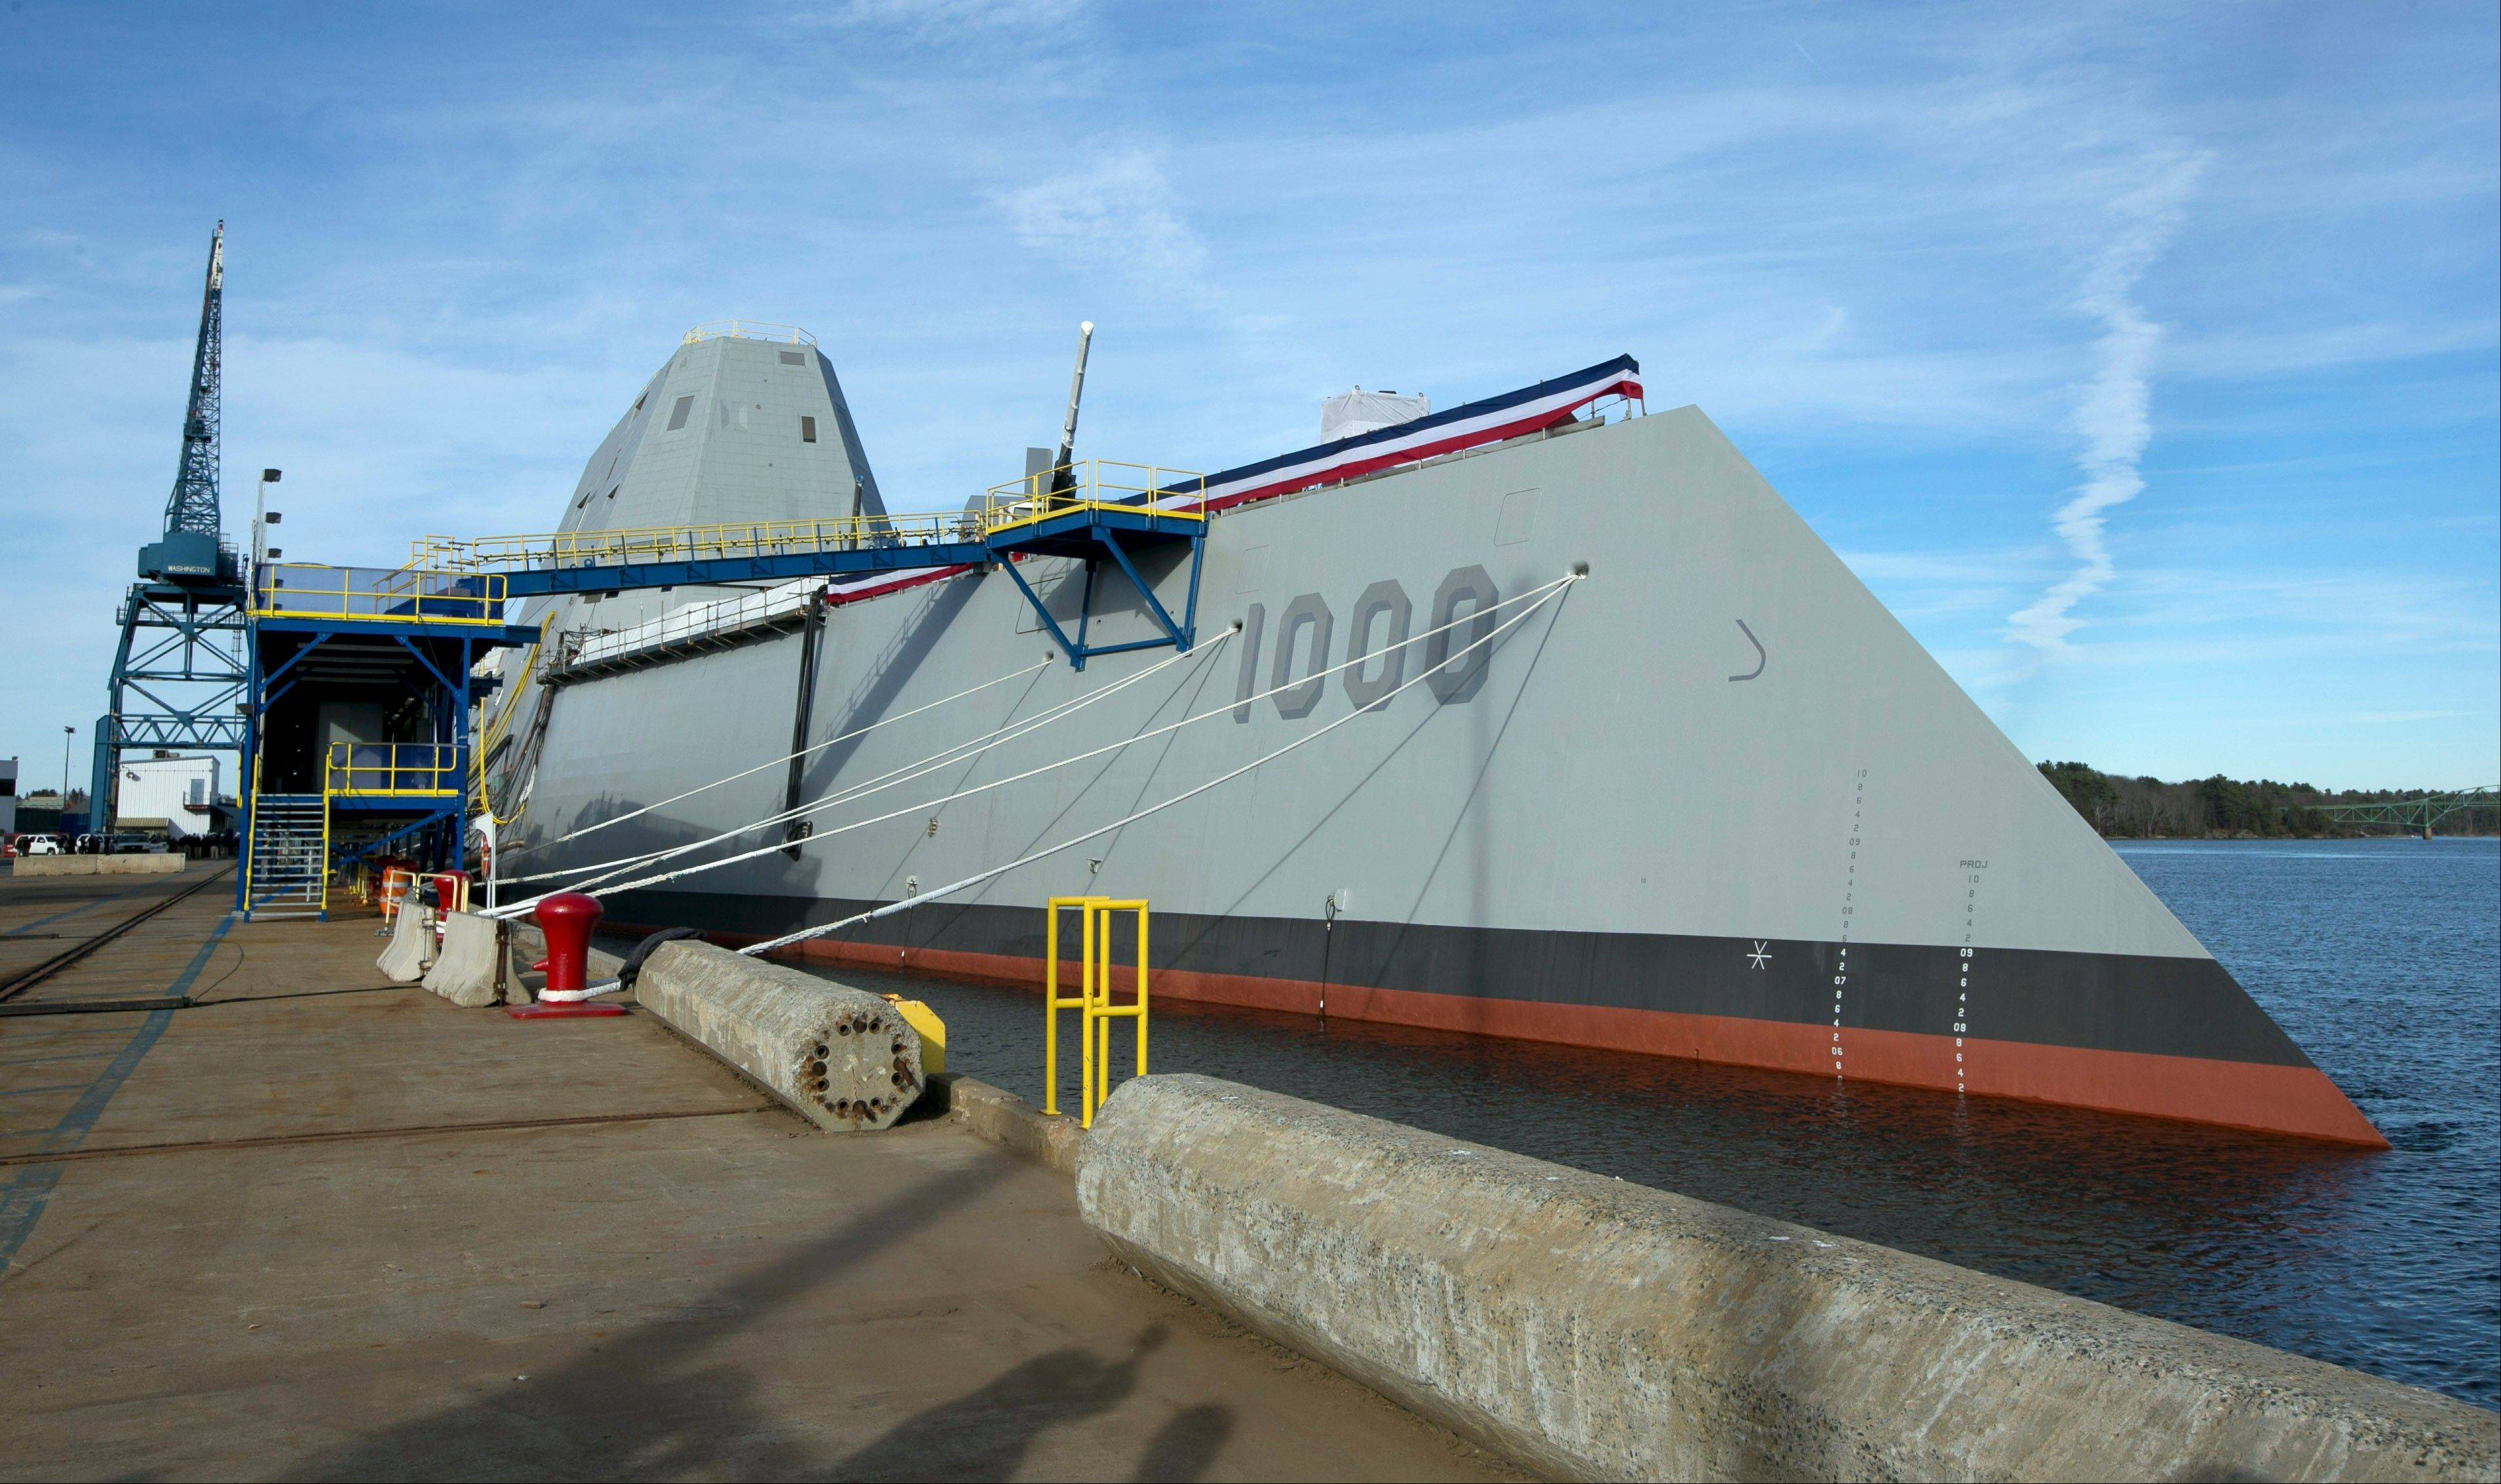 The Navy's stealthy Zumwalt destroyer is moored at Bath Iron Works, in Bath, Maine. The skipper of the technology-laden Zumwalt is Capt. James Kirk, and his futuristic-looking vessel sports cutting-edge technology, new propulsion and powerful armaments, but this ship isn't the Starship Enterprise.